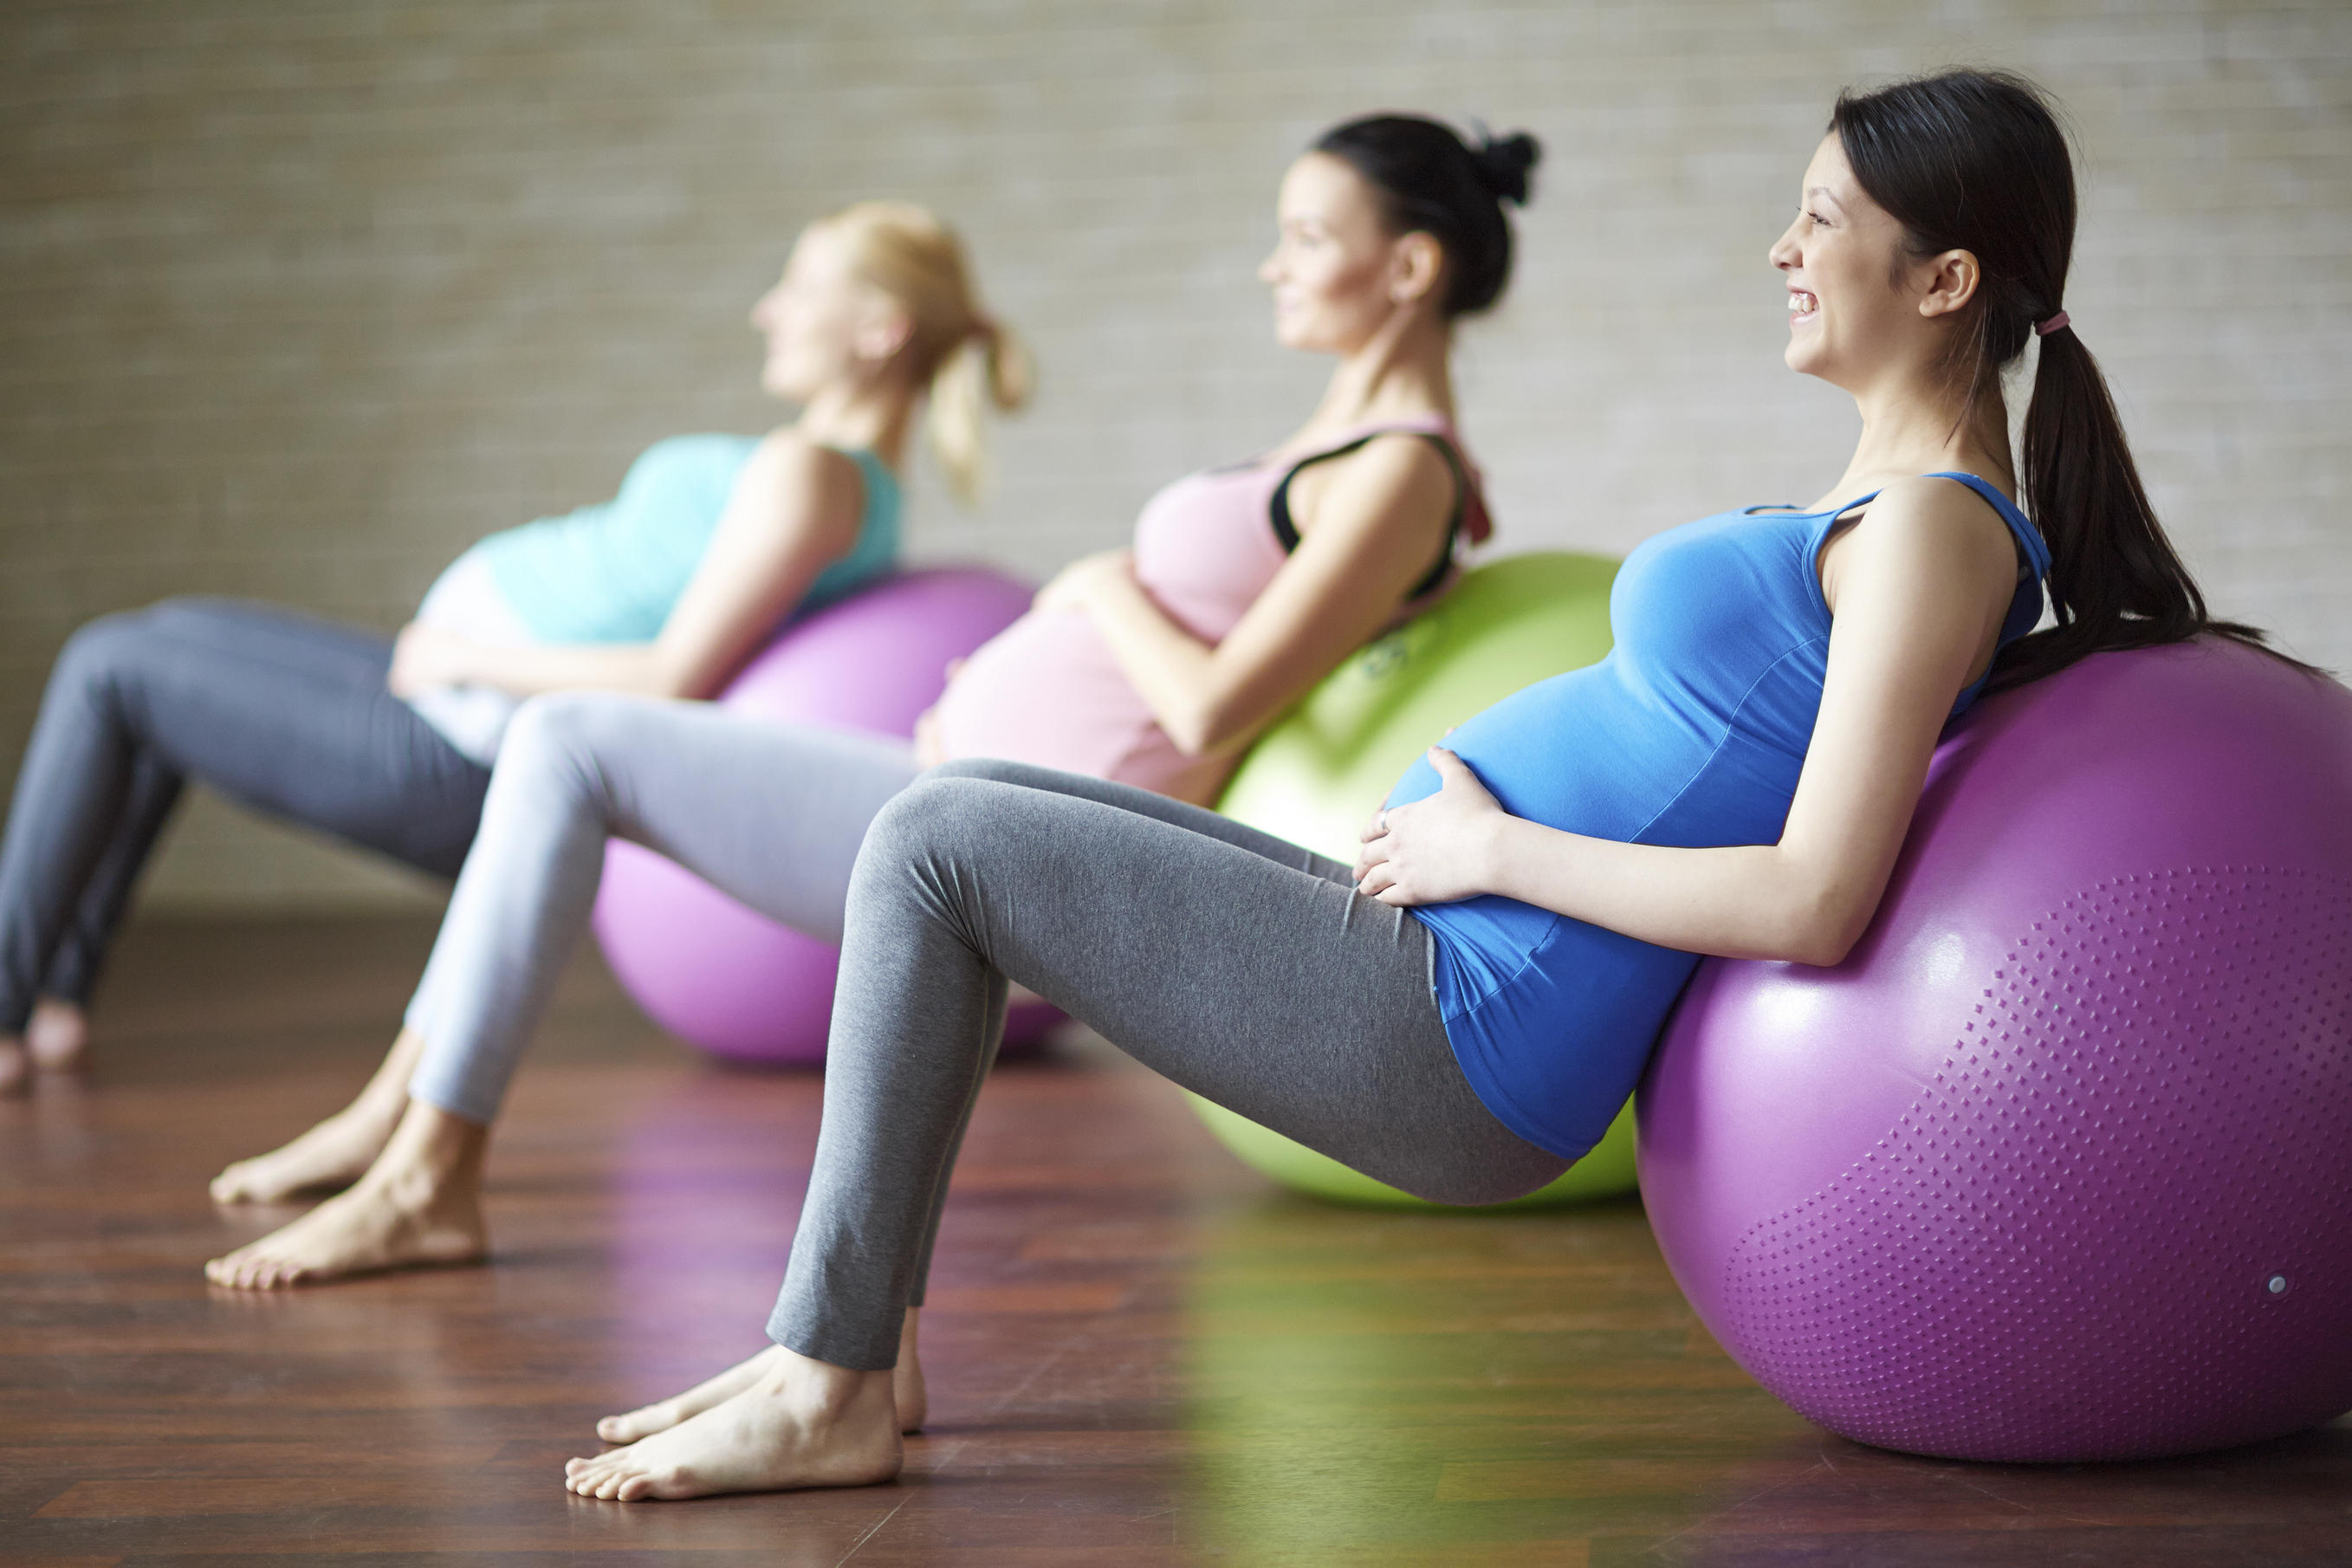 Some Exercises during Pregnancy to Stay Well